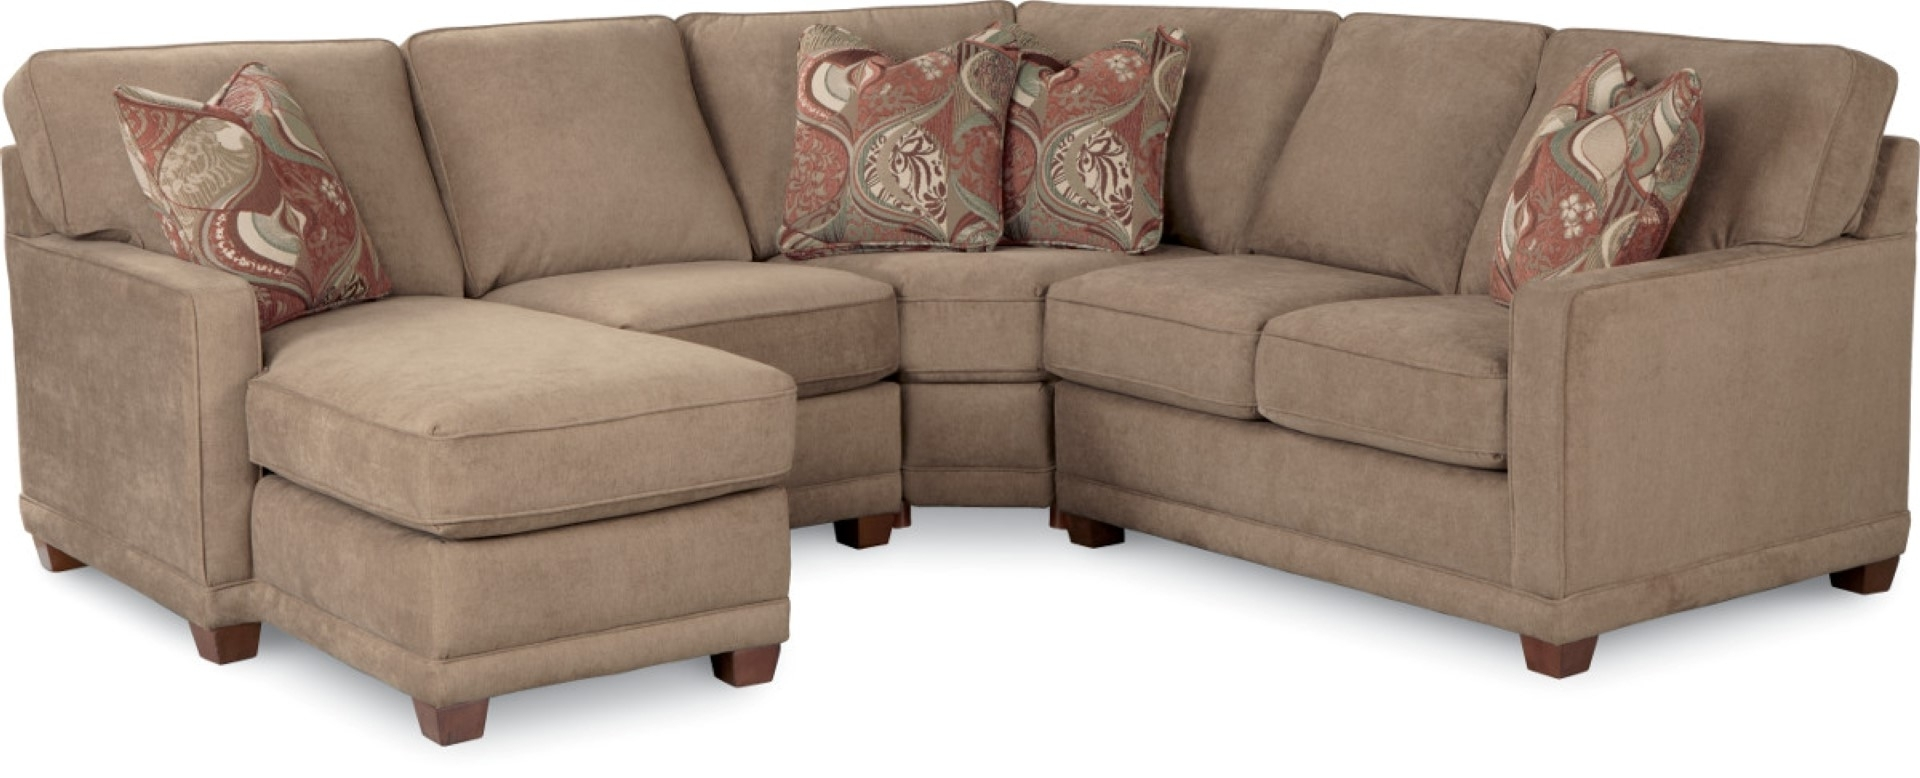 2020 Por Sectional Sofas At Lazy Boy